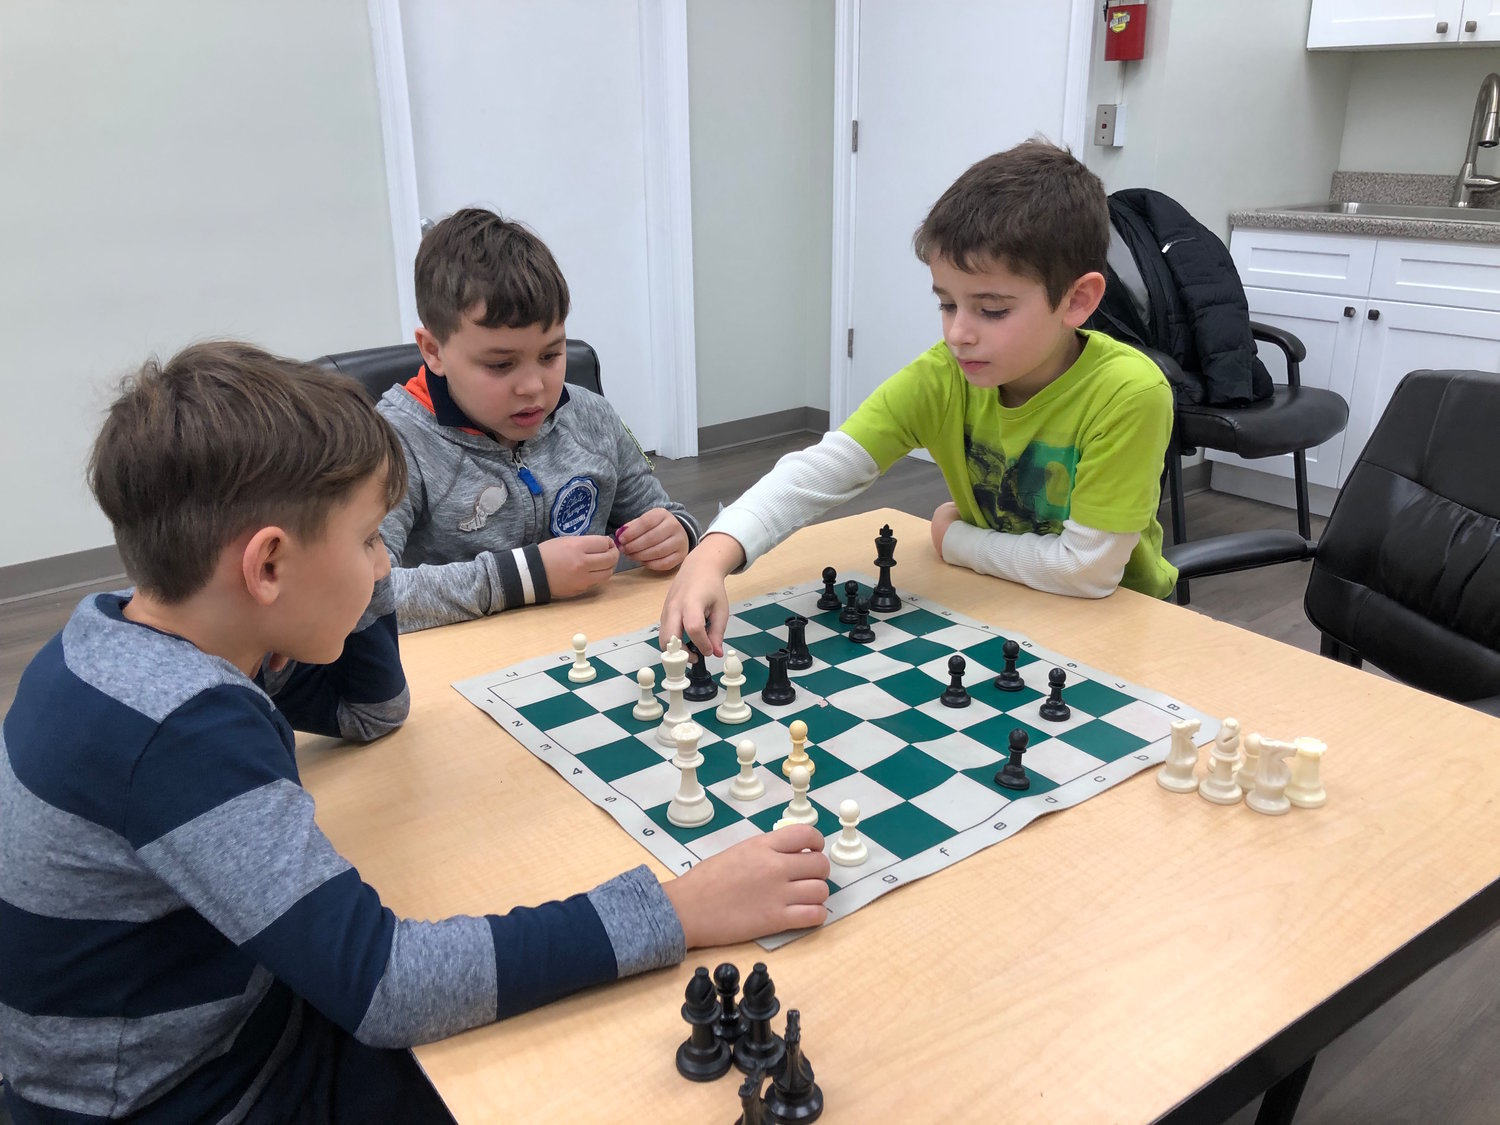 Children will have the opportunity to sign up for a virtual chess class through the Gural JCC this summer. Pictured here in December 2018 is Michael Abelev, right, making his move against Nathaniel Shamalov, left, as Marat Ustinovich oversaw the match.